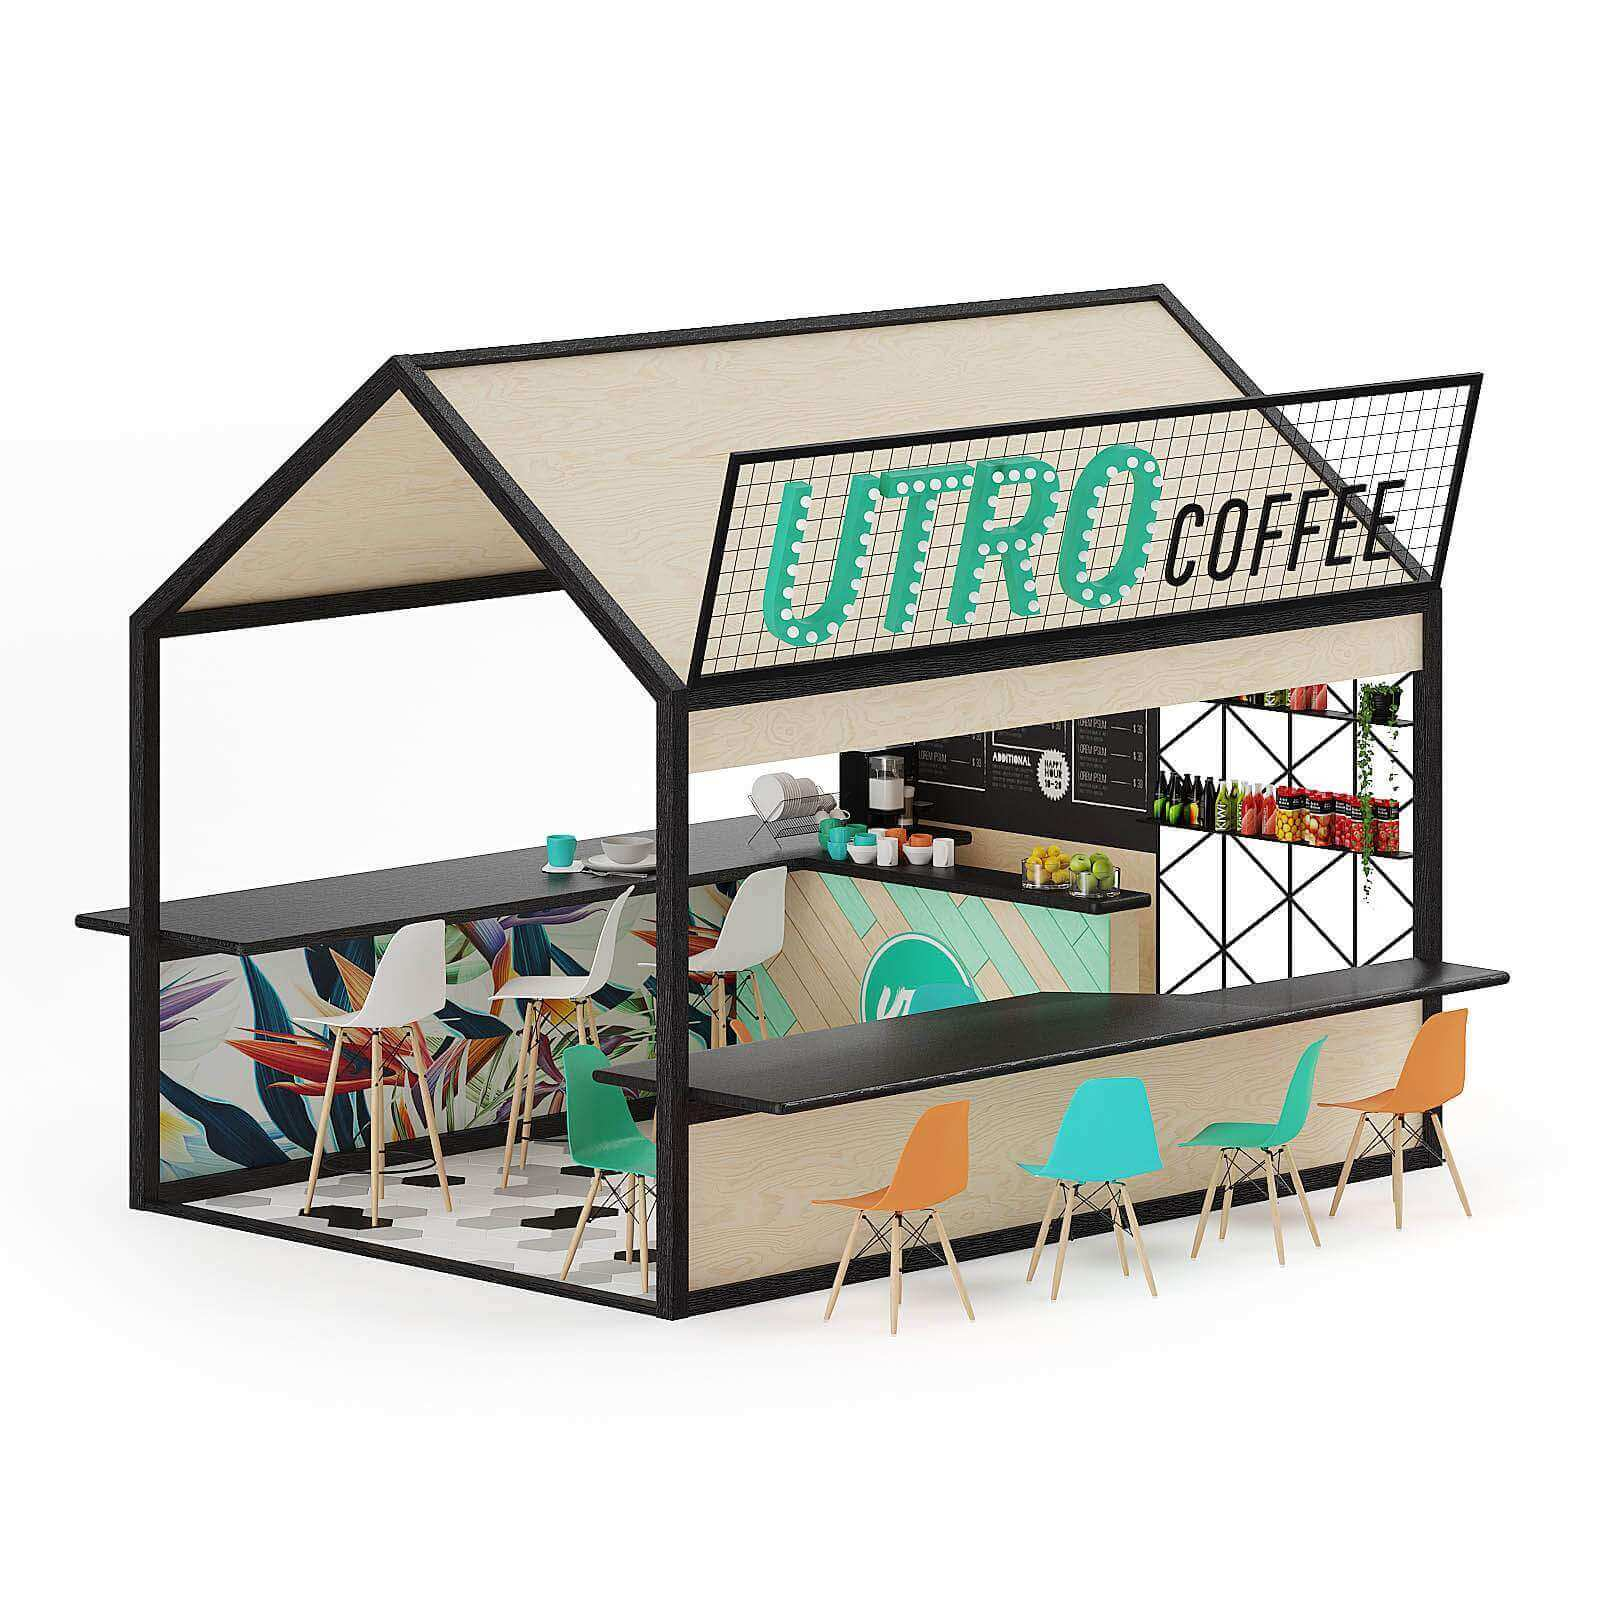 Outdoor simple coffee stand | small house for sell food | outside snack display booth